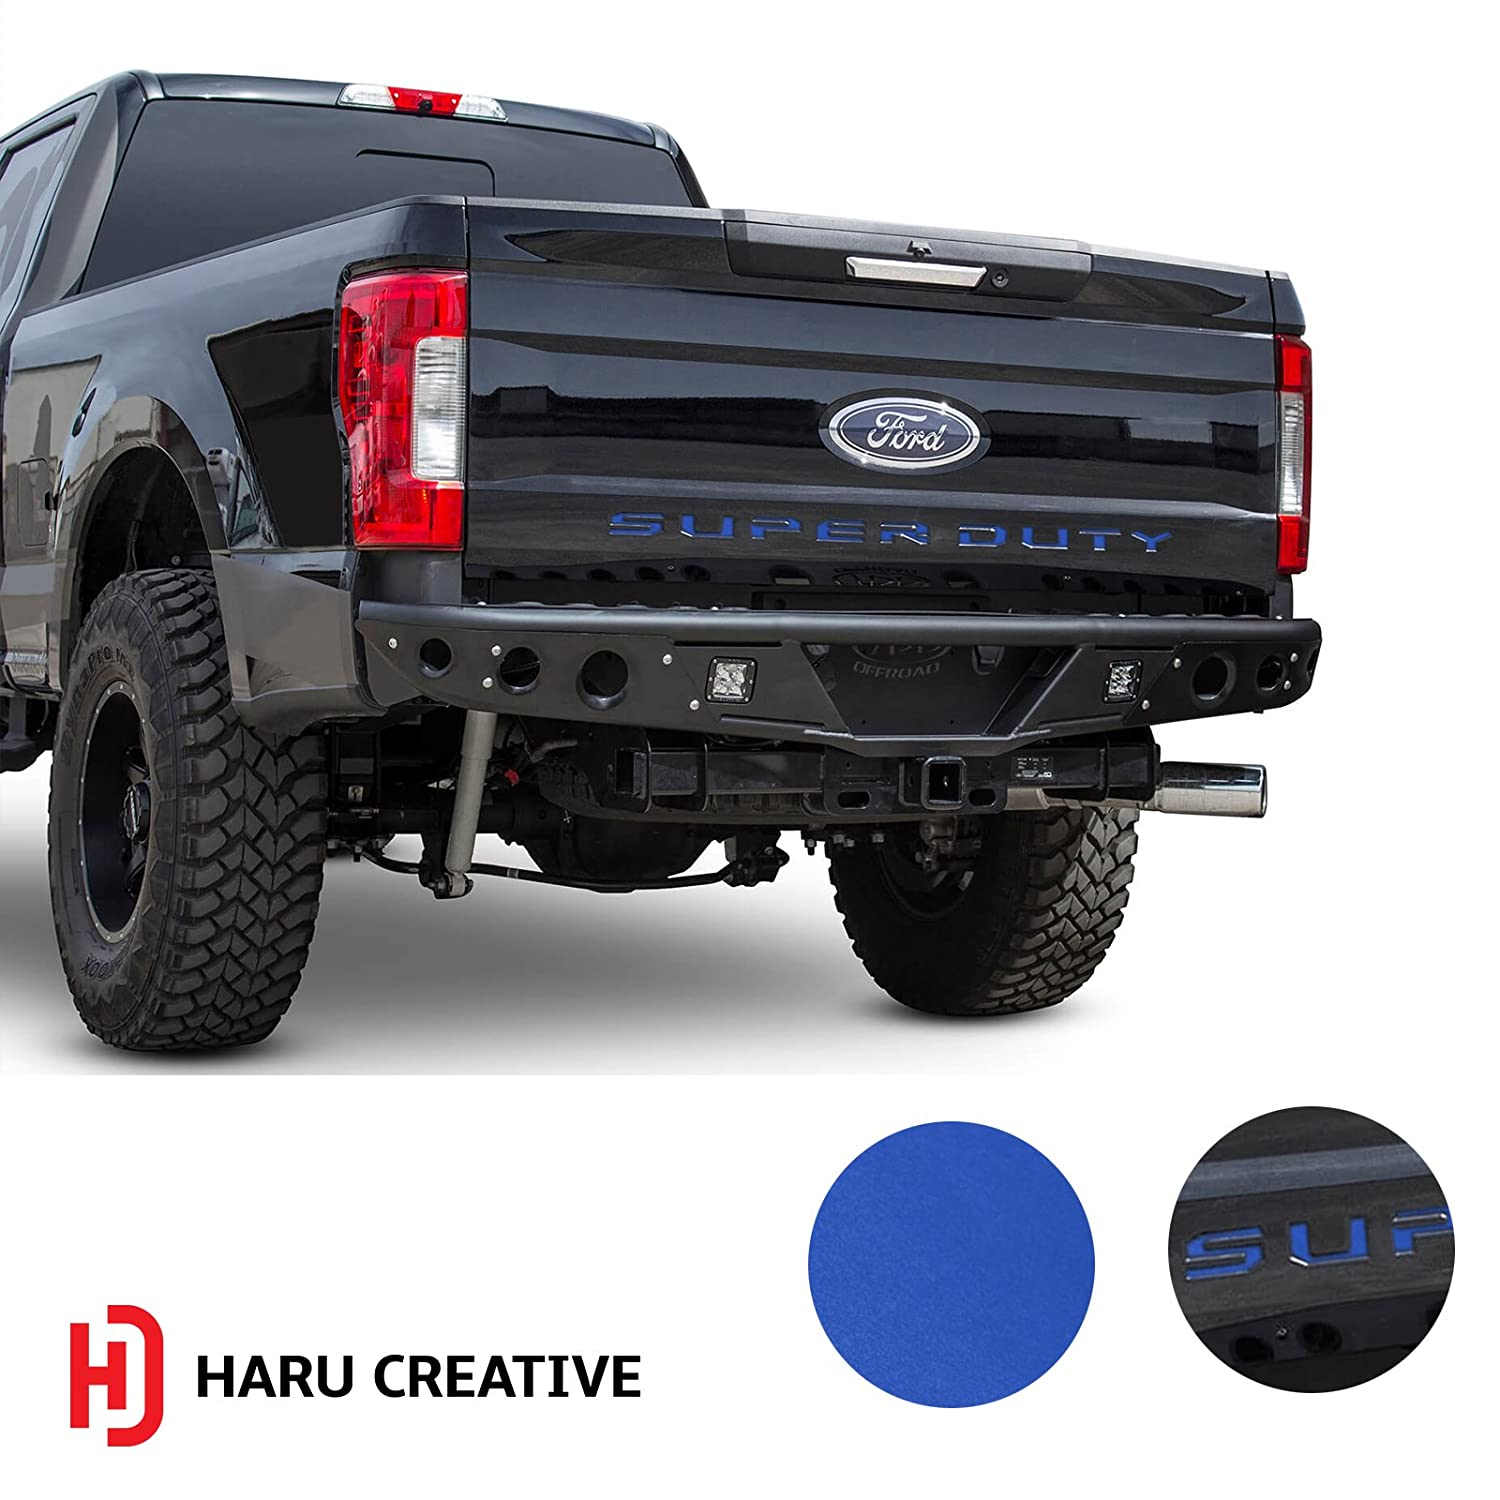 Rear Tailgate Letter Insert Overlay Vinyl Decal Sticker Compatible with and Fits 2017 2018 Ford Super Duty F250 F350 F450 Haru Creative Matte Gunmetal